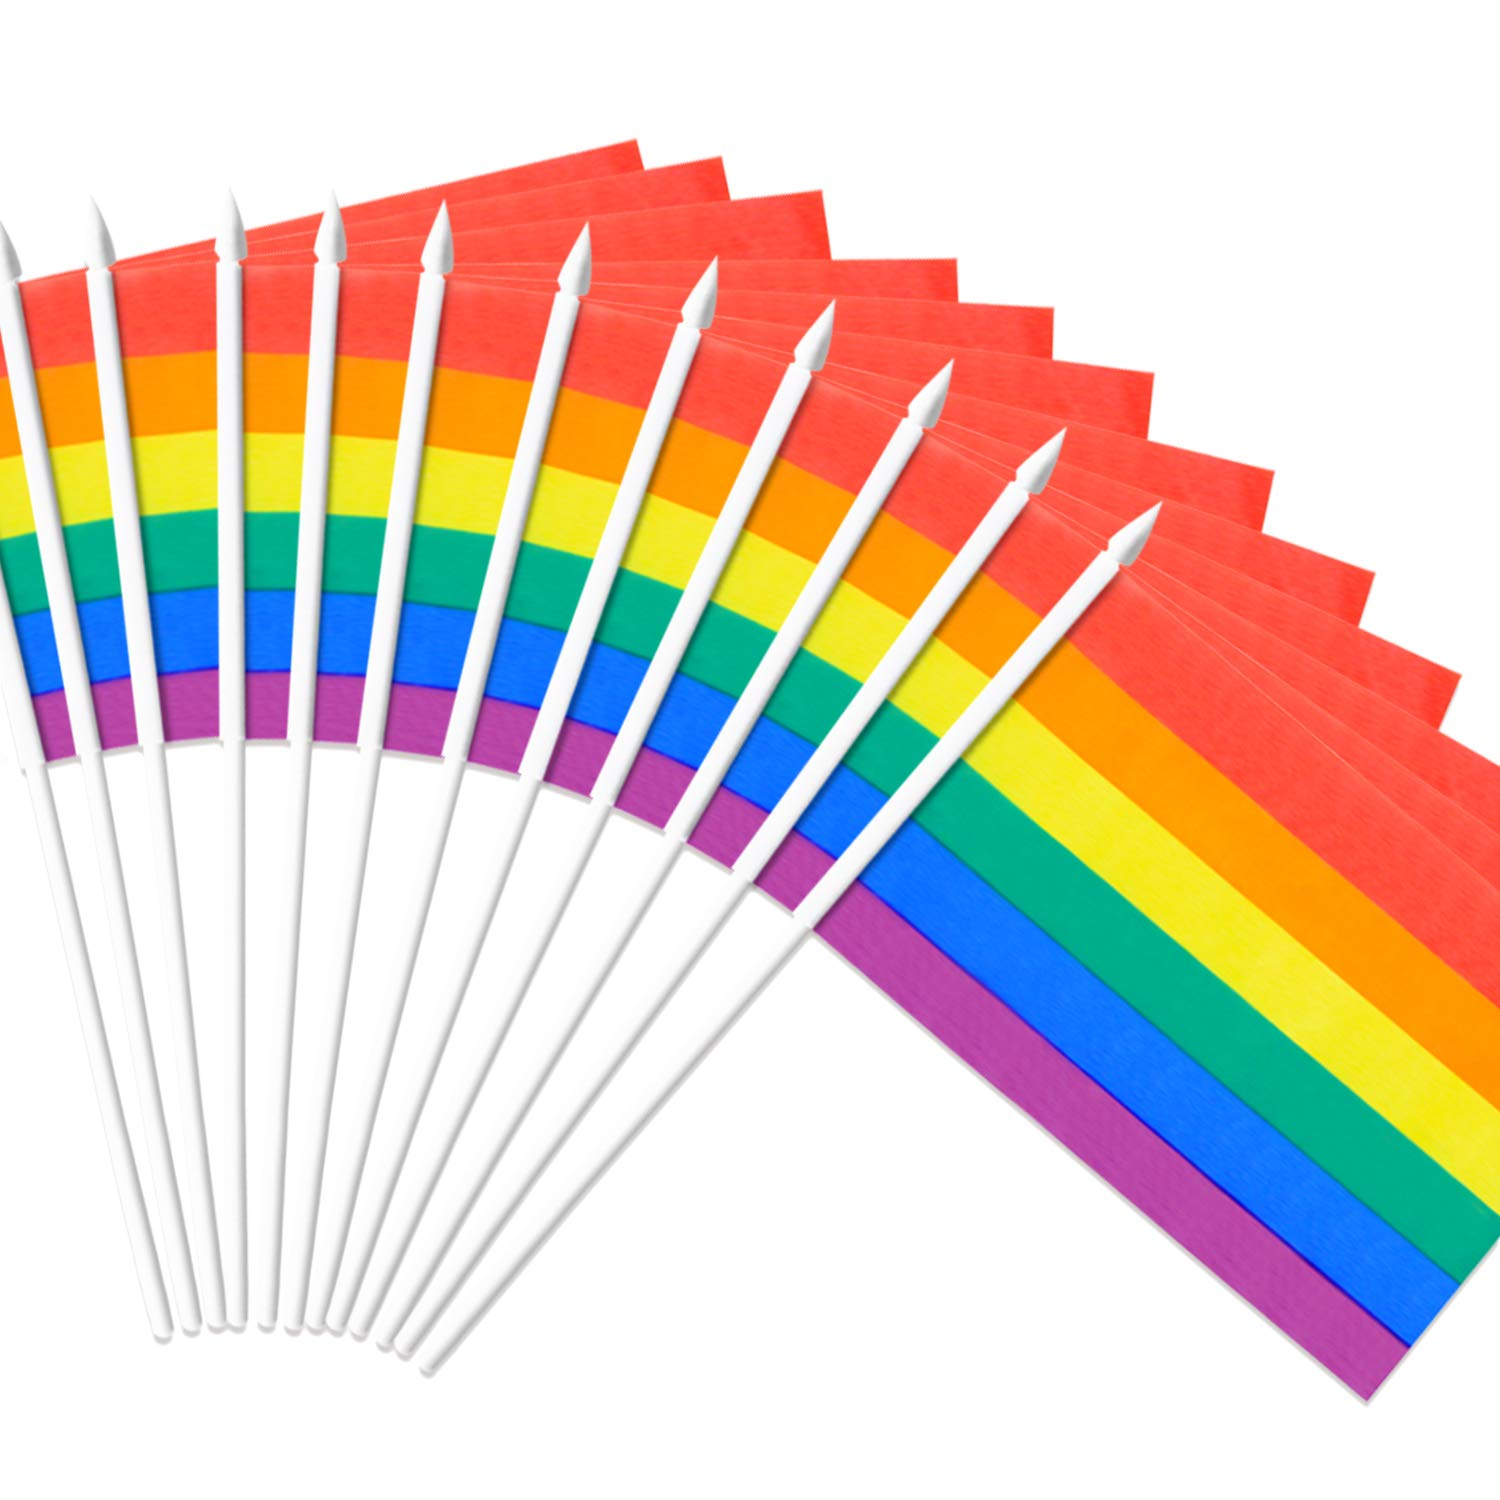 """Anley Rainbow Gay Pride Stick Flag, 5x8 inch Handheld Mini Flag with 12"""" White Solid Pole - Vivid Color and Fade Resistant - LGBT 5 x 8 inch Hand Held Flags with Spear Top (1 Dozen)"""